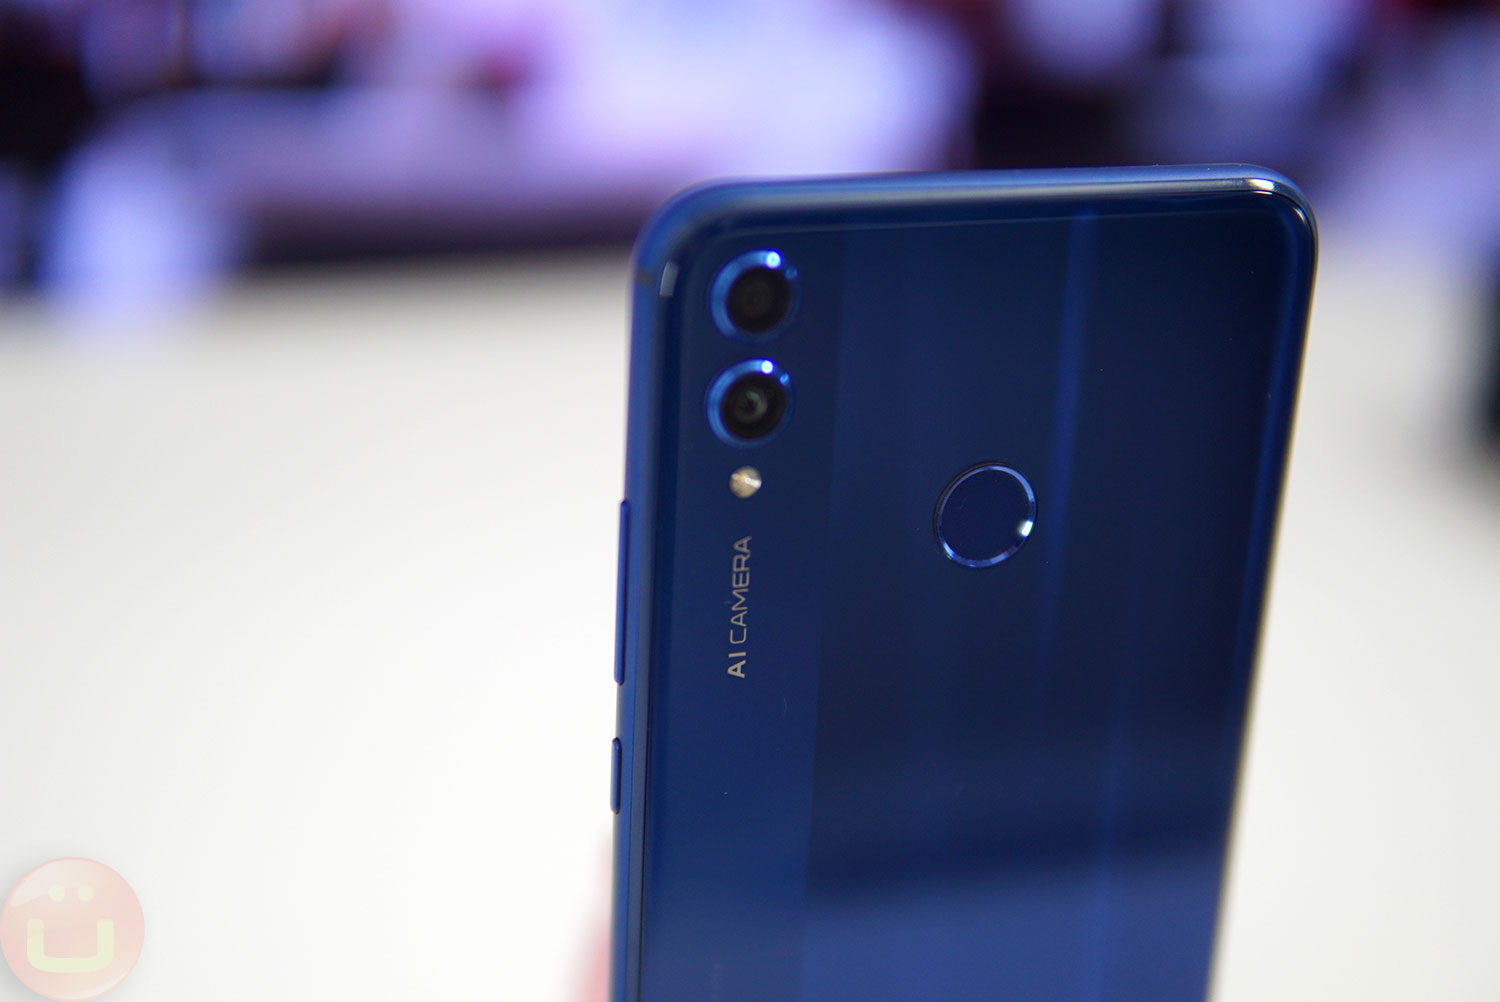 Compare Honor 10 Lite Vs Samsung M20: Which one is better?